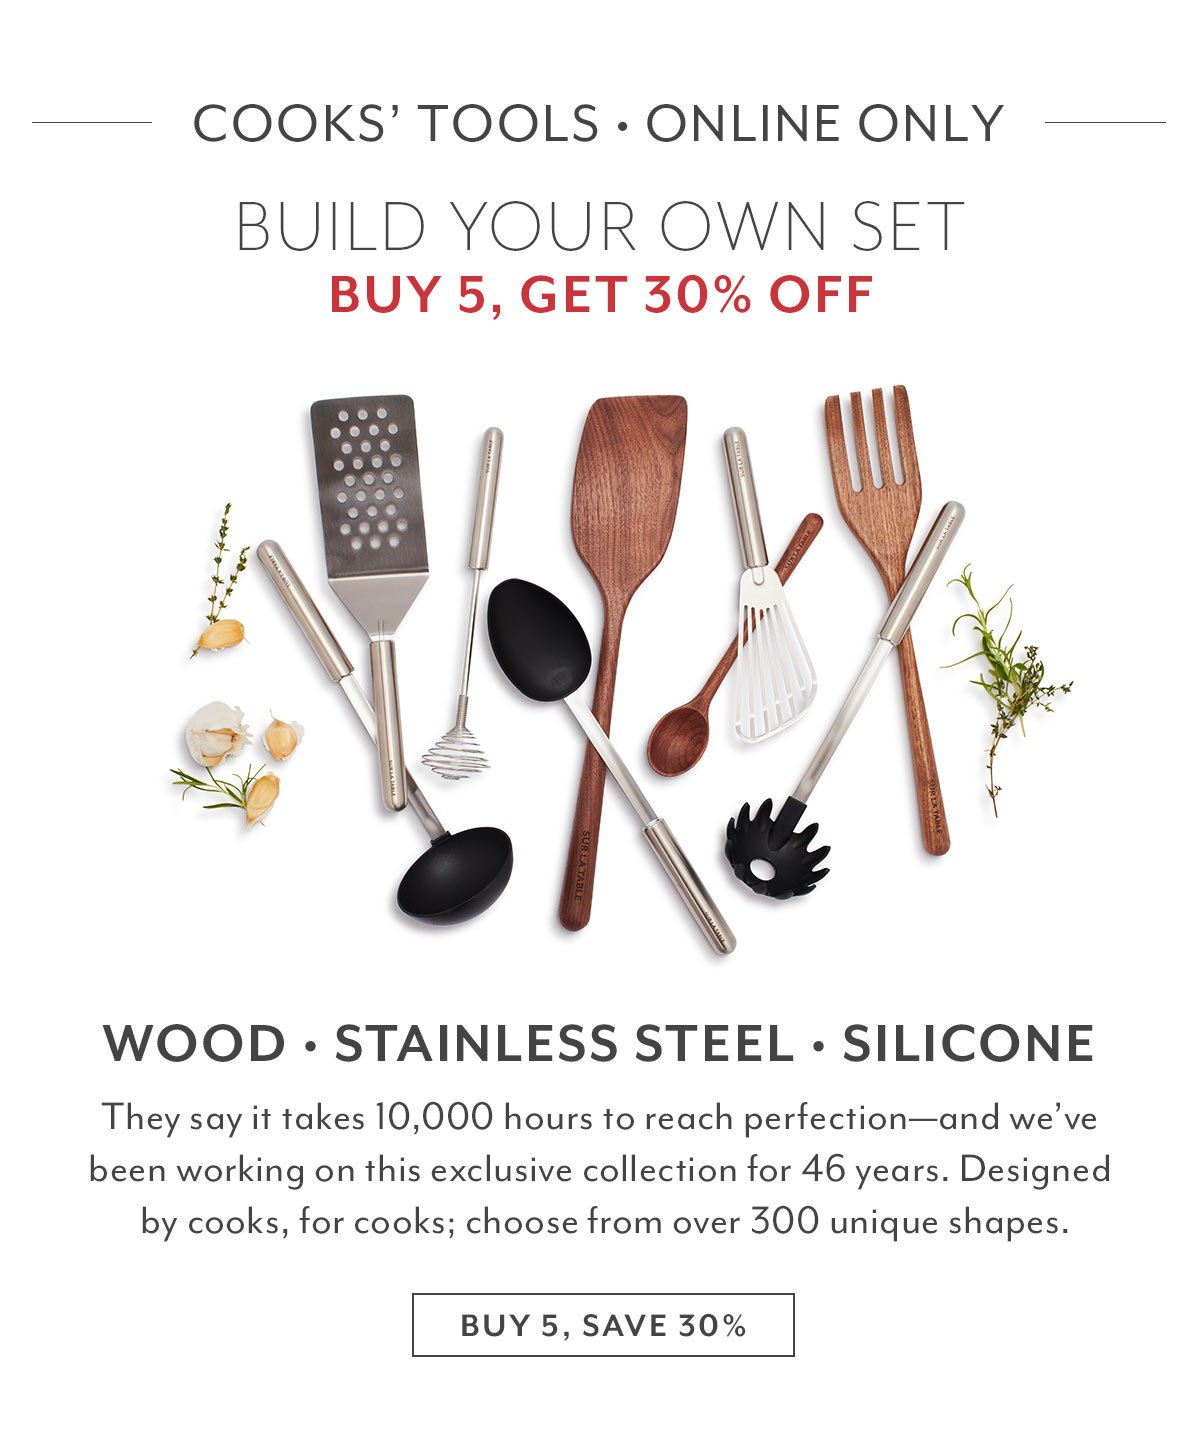 Cooks' Tools • Buy 5, Get 30% Off